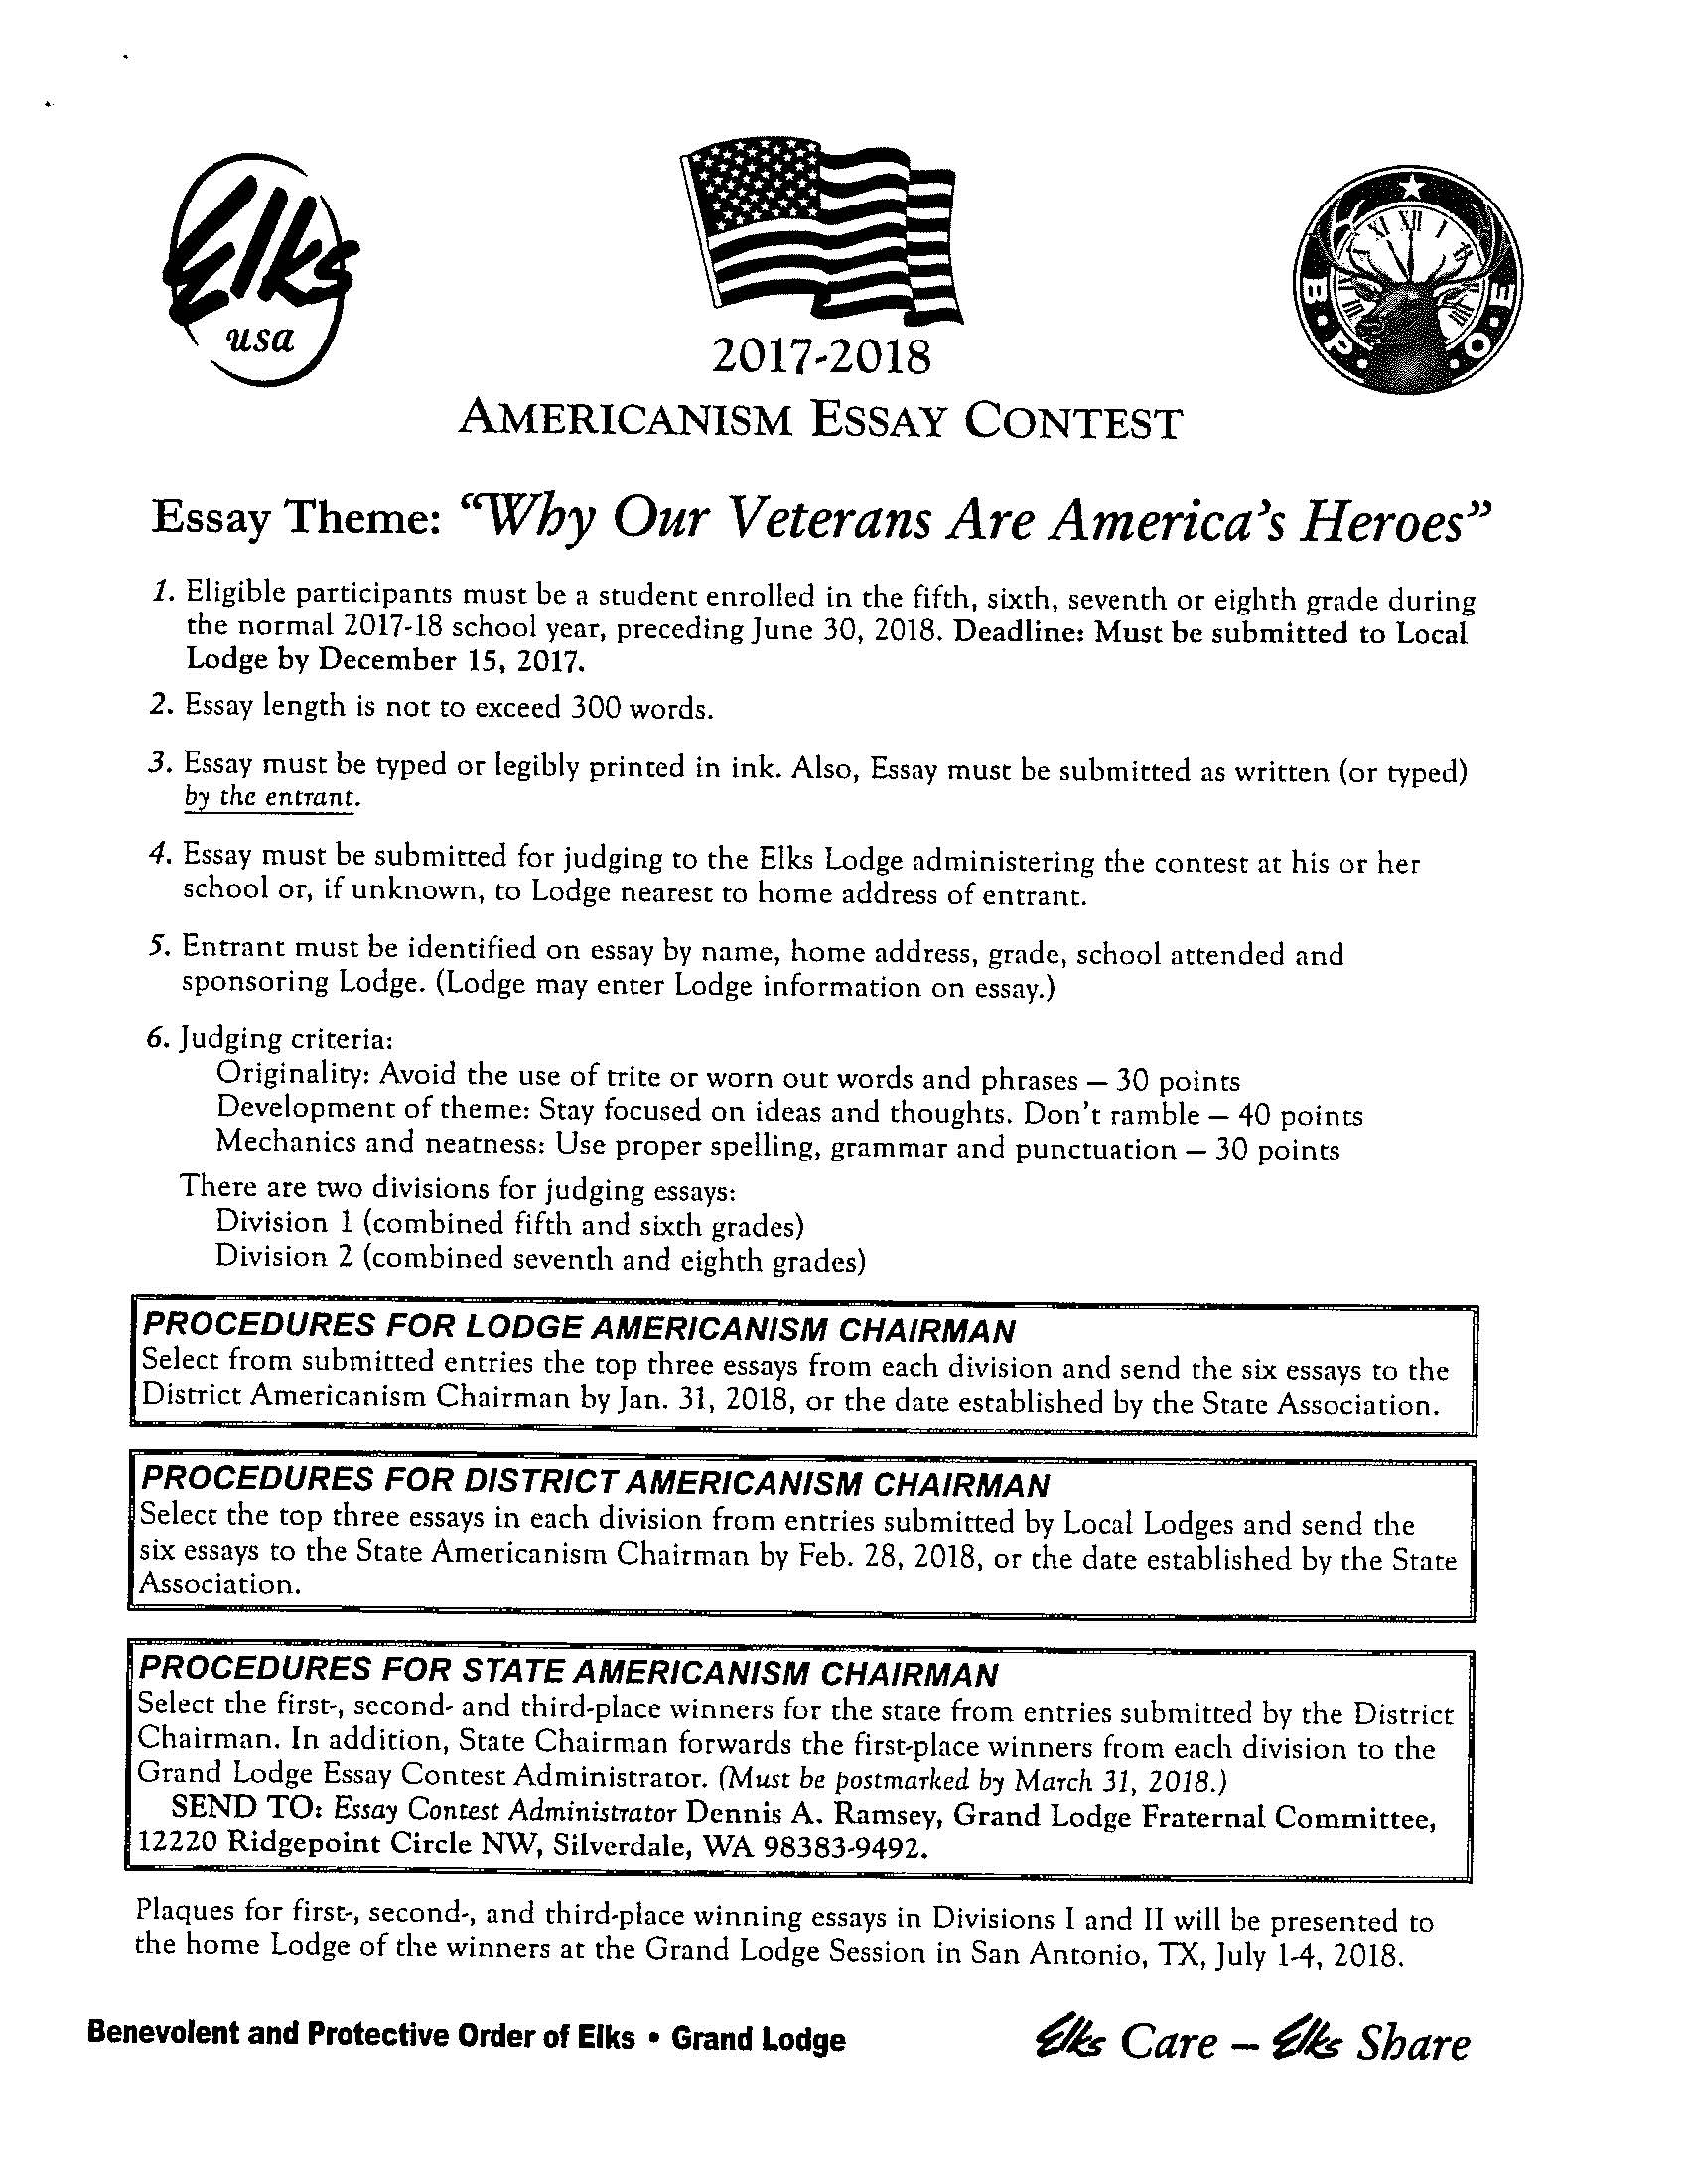 elks lodge essay contest 2011 Americanism essay contest a program of the elks' grand lodge fraternal committee, this contest is geared towards students in 5th through 8th grades to promote patriotism among young people.